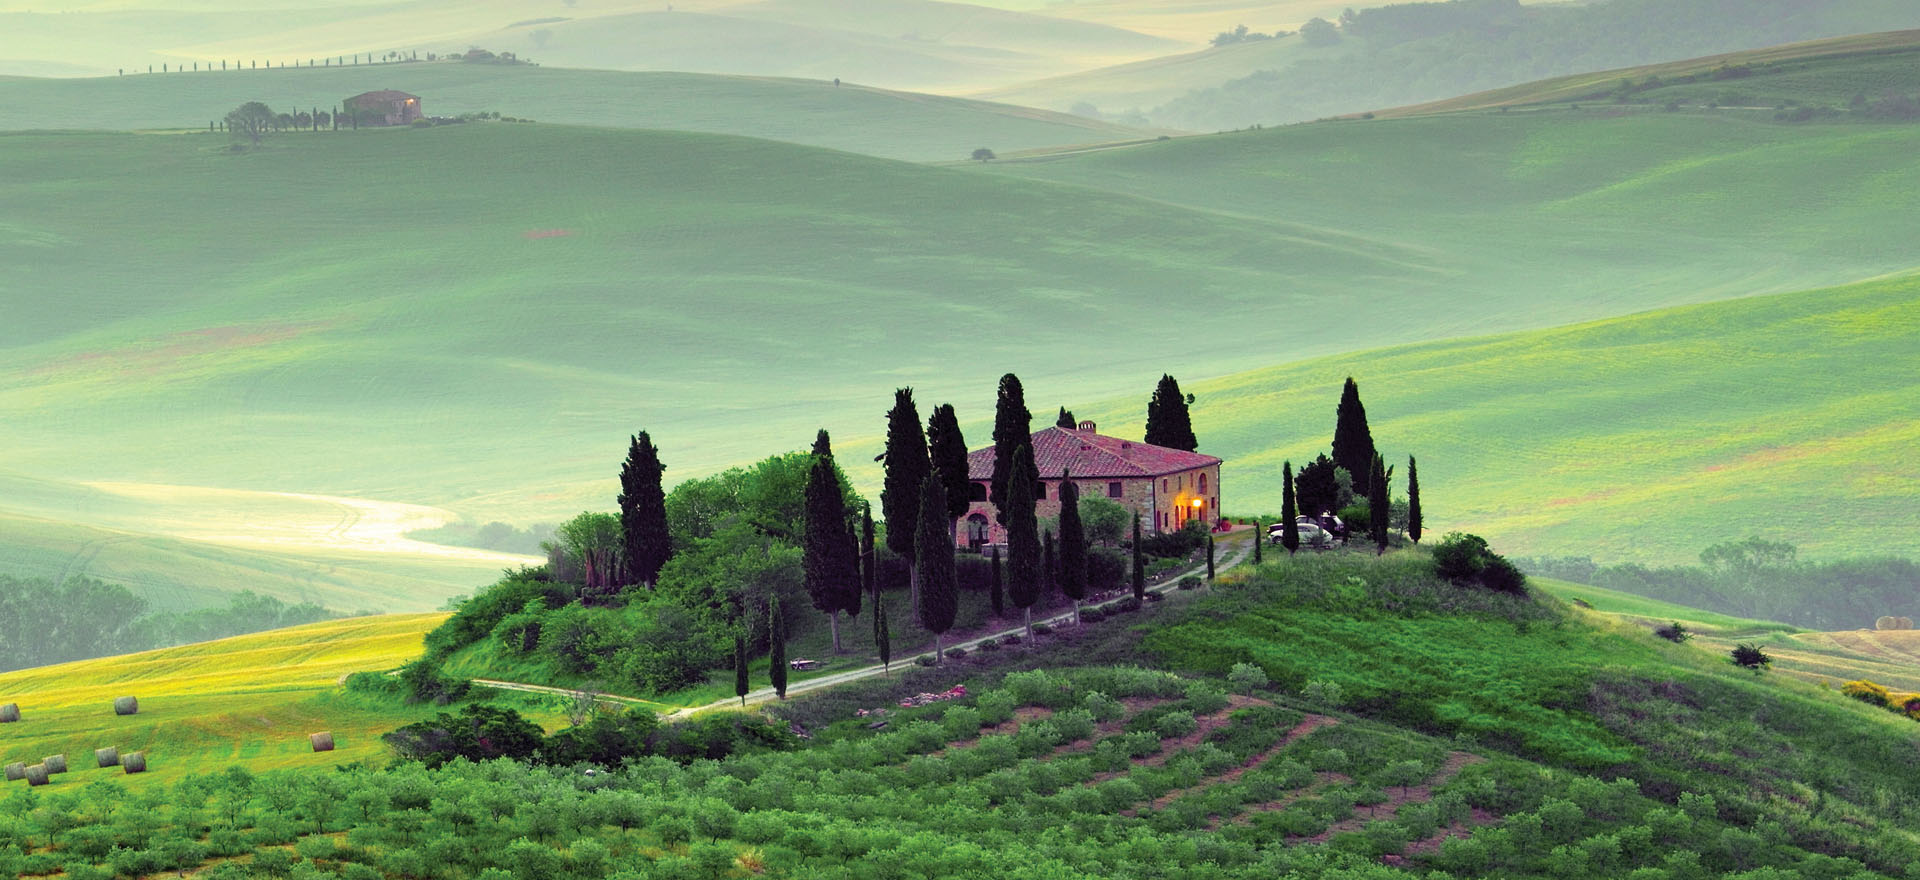 House surrounded by Cypress trees in green Tuscan hills